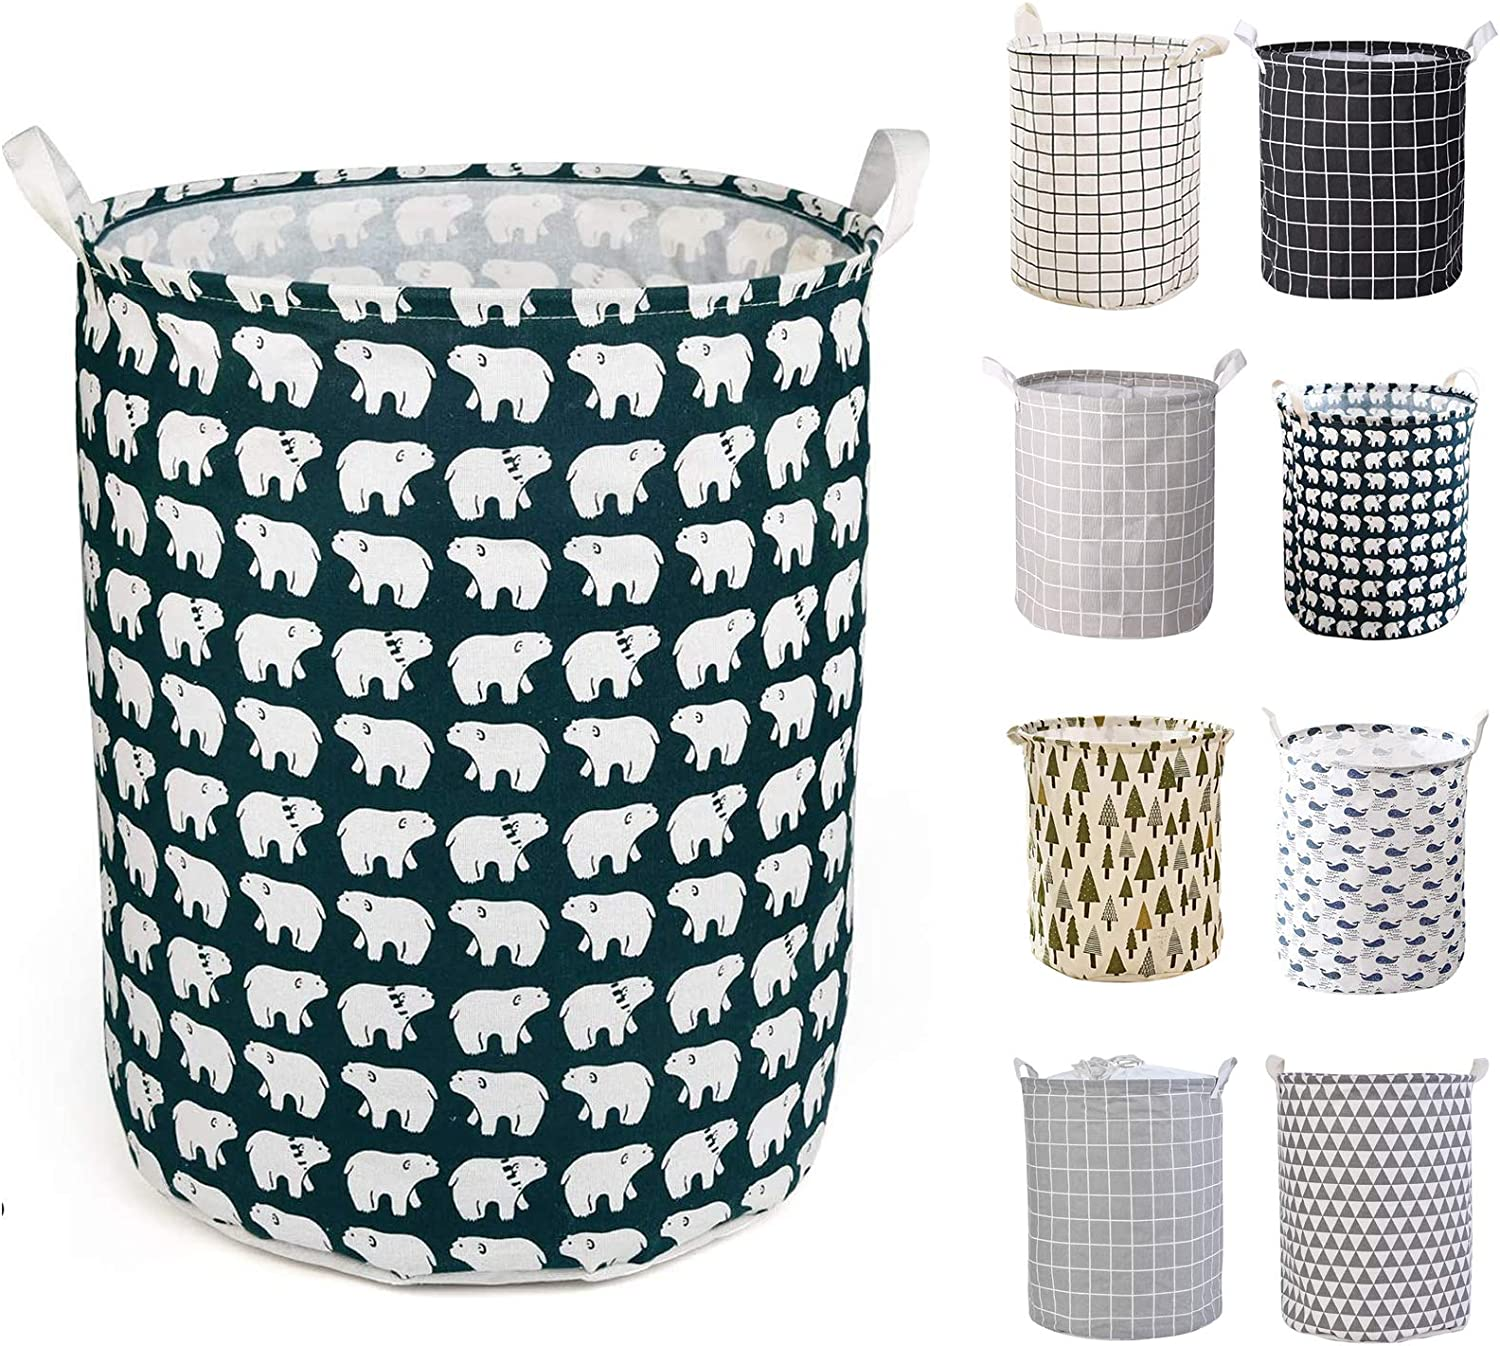 Storage for Bedroom Fyore Laundry Hampers Waterproof Round Cotton Linen Collapsible Laundry Basket Toys Bathrooms Bear Pattern